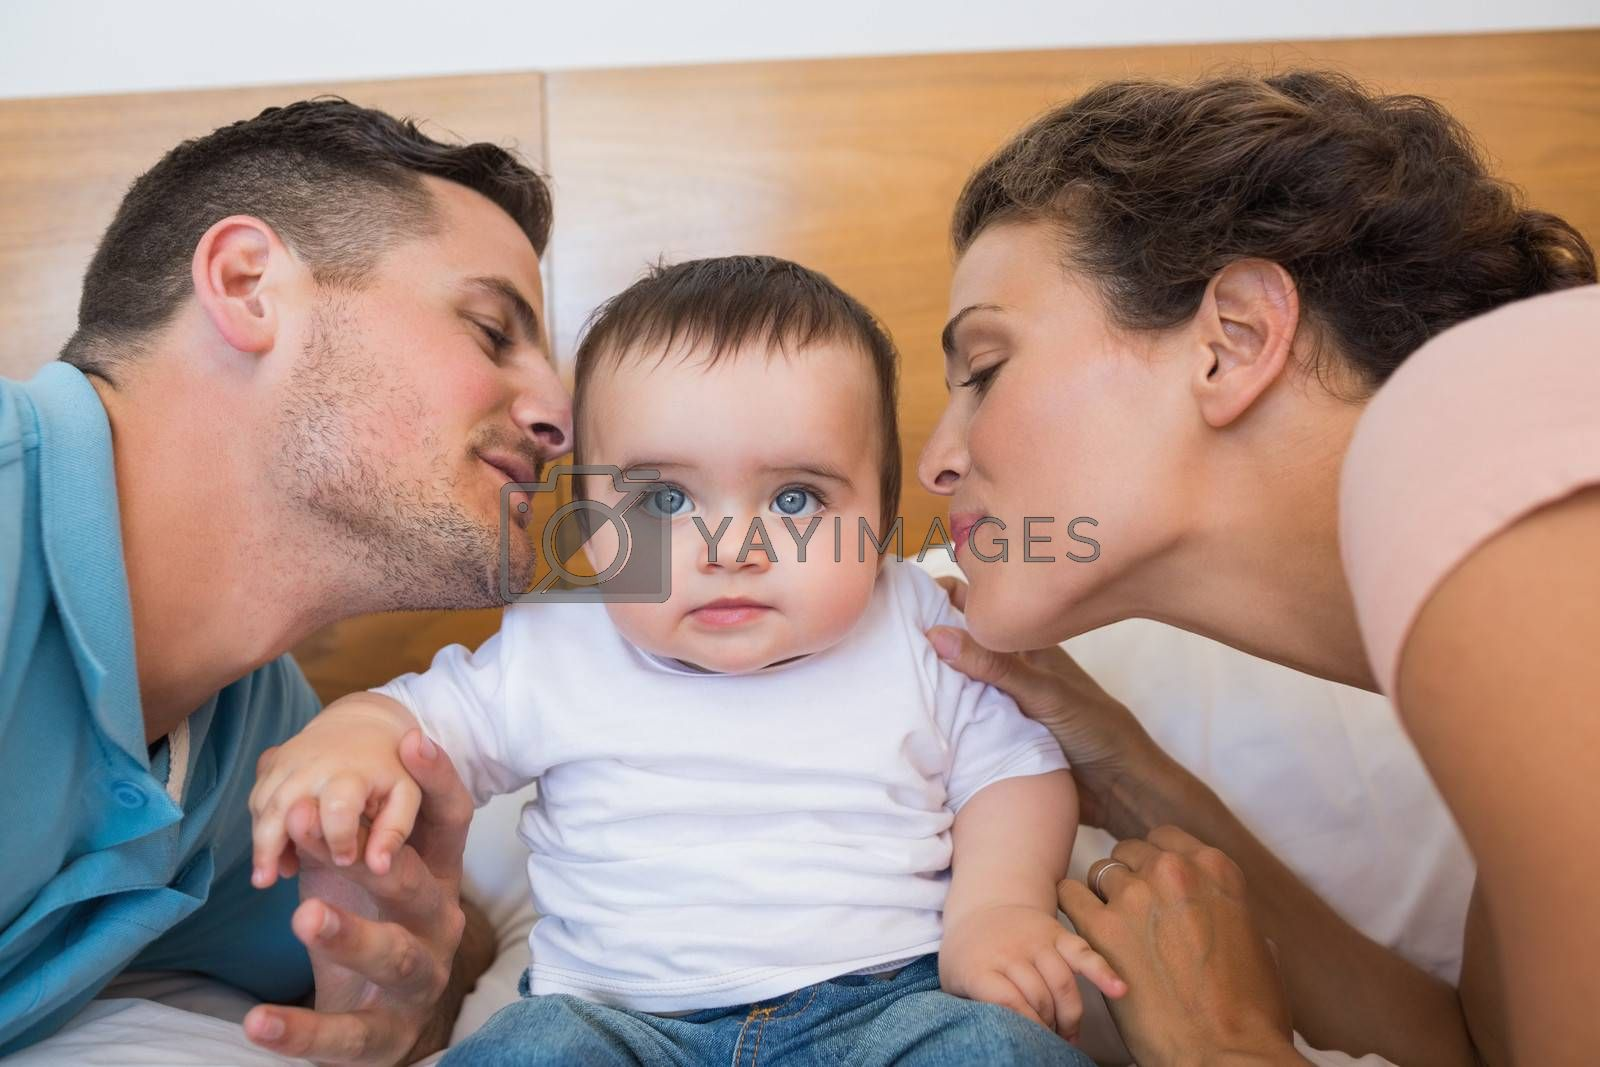 Loving parents kissing baby boy on cheek in bed